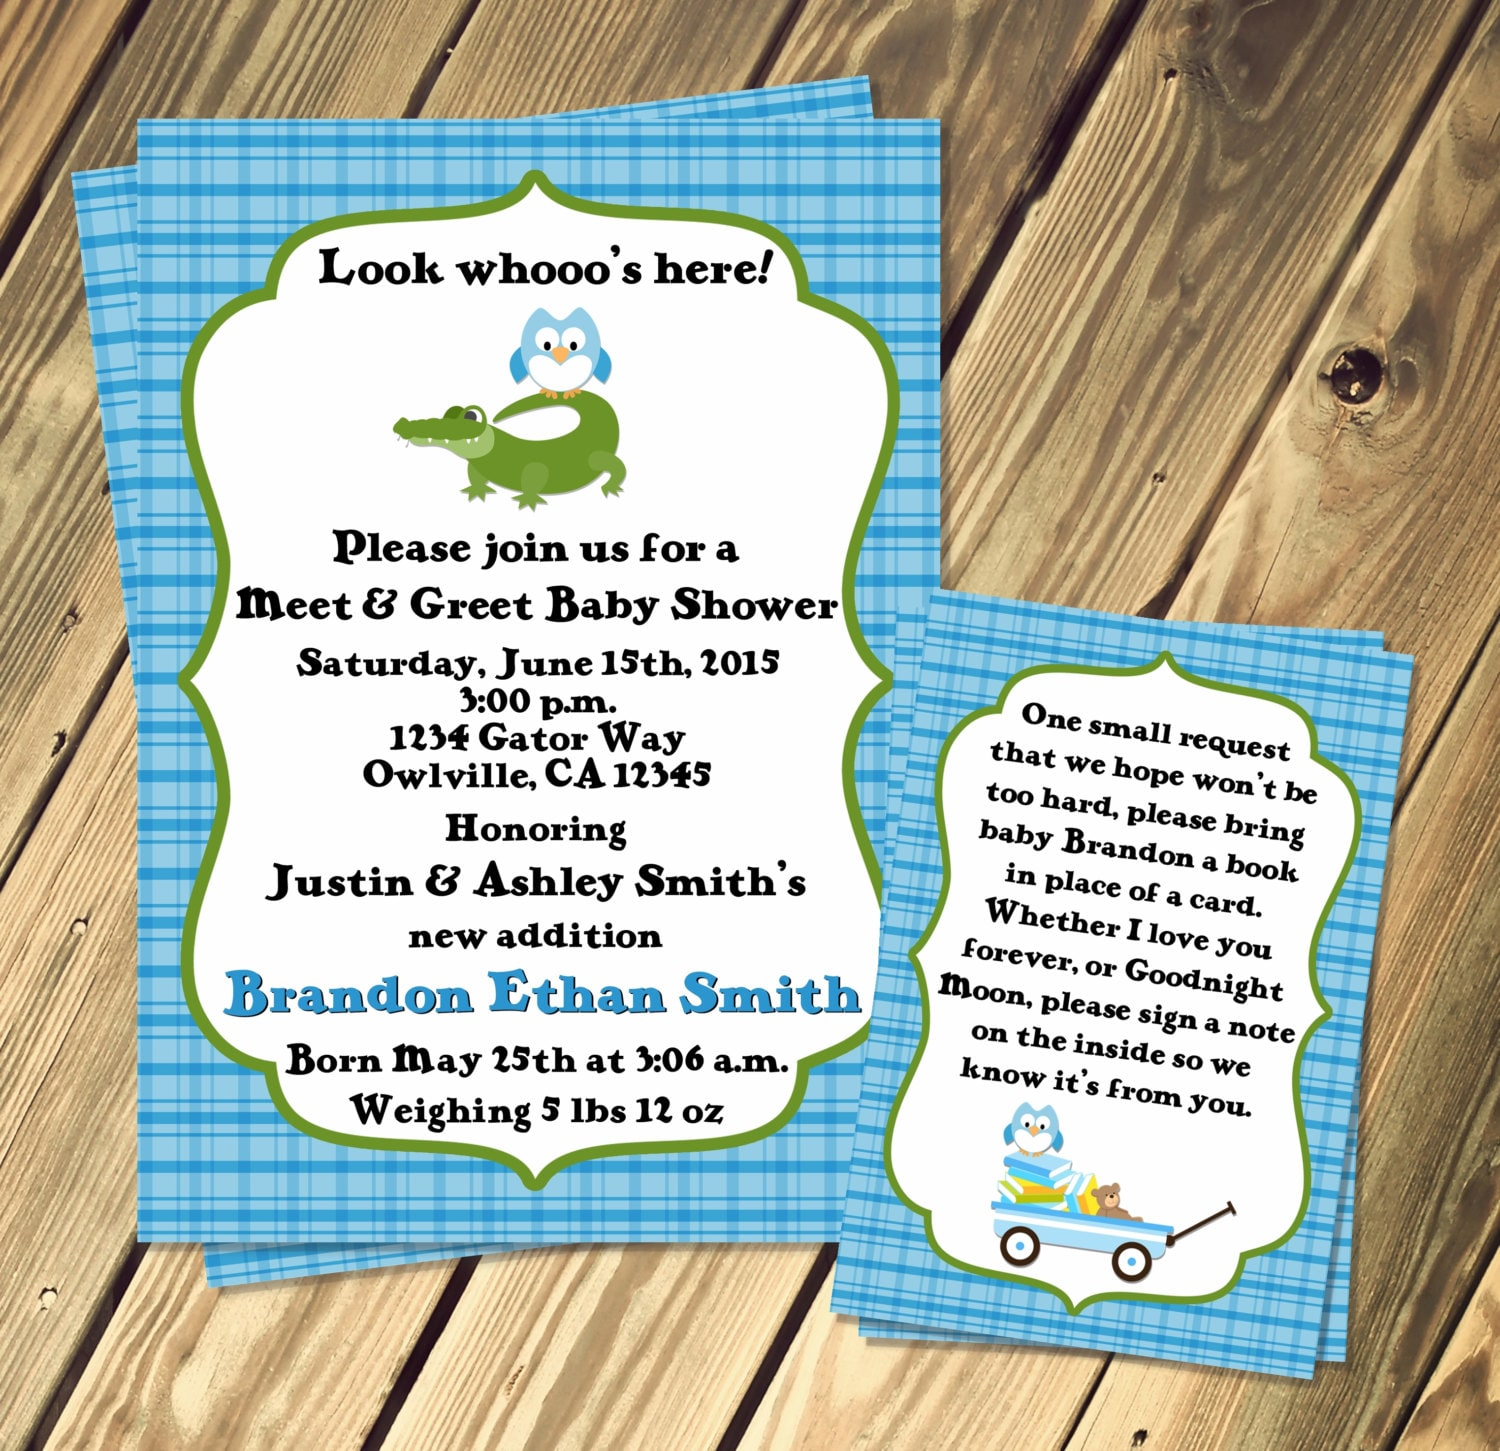 Goodnight moon baby shower elegant baby shower food cheap girl baby alligator and owl baby shower meet and greet invitation print il fullxfull alligator and owl baby m4hsunfo